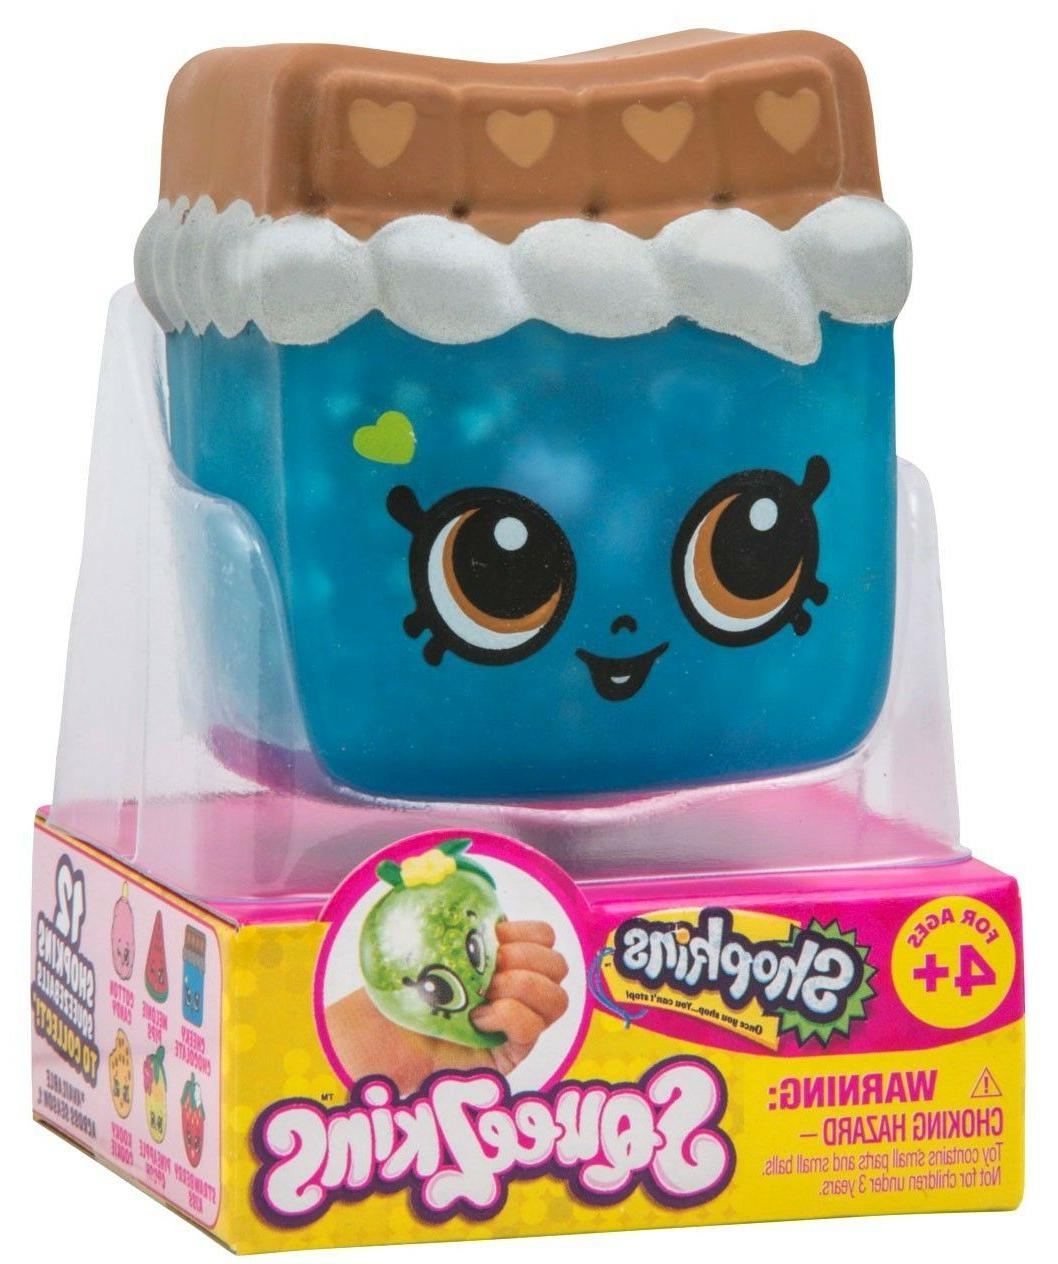 shopkins squeezkins cheeky chocolate cute squishy squeezable